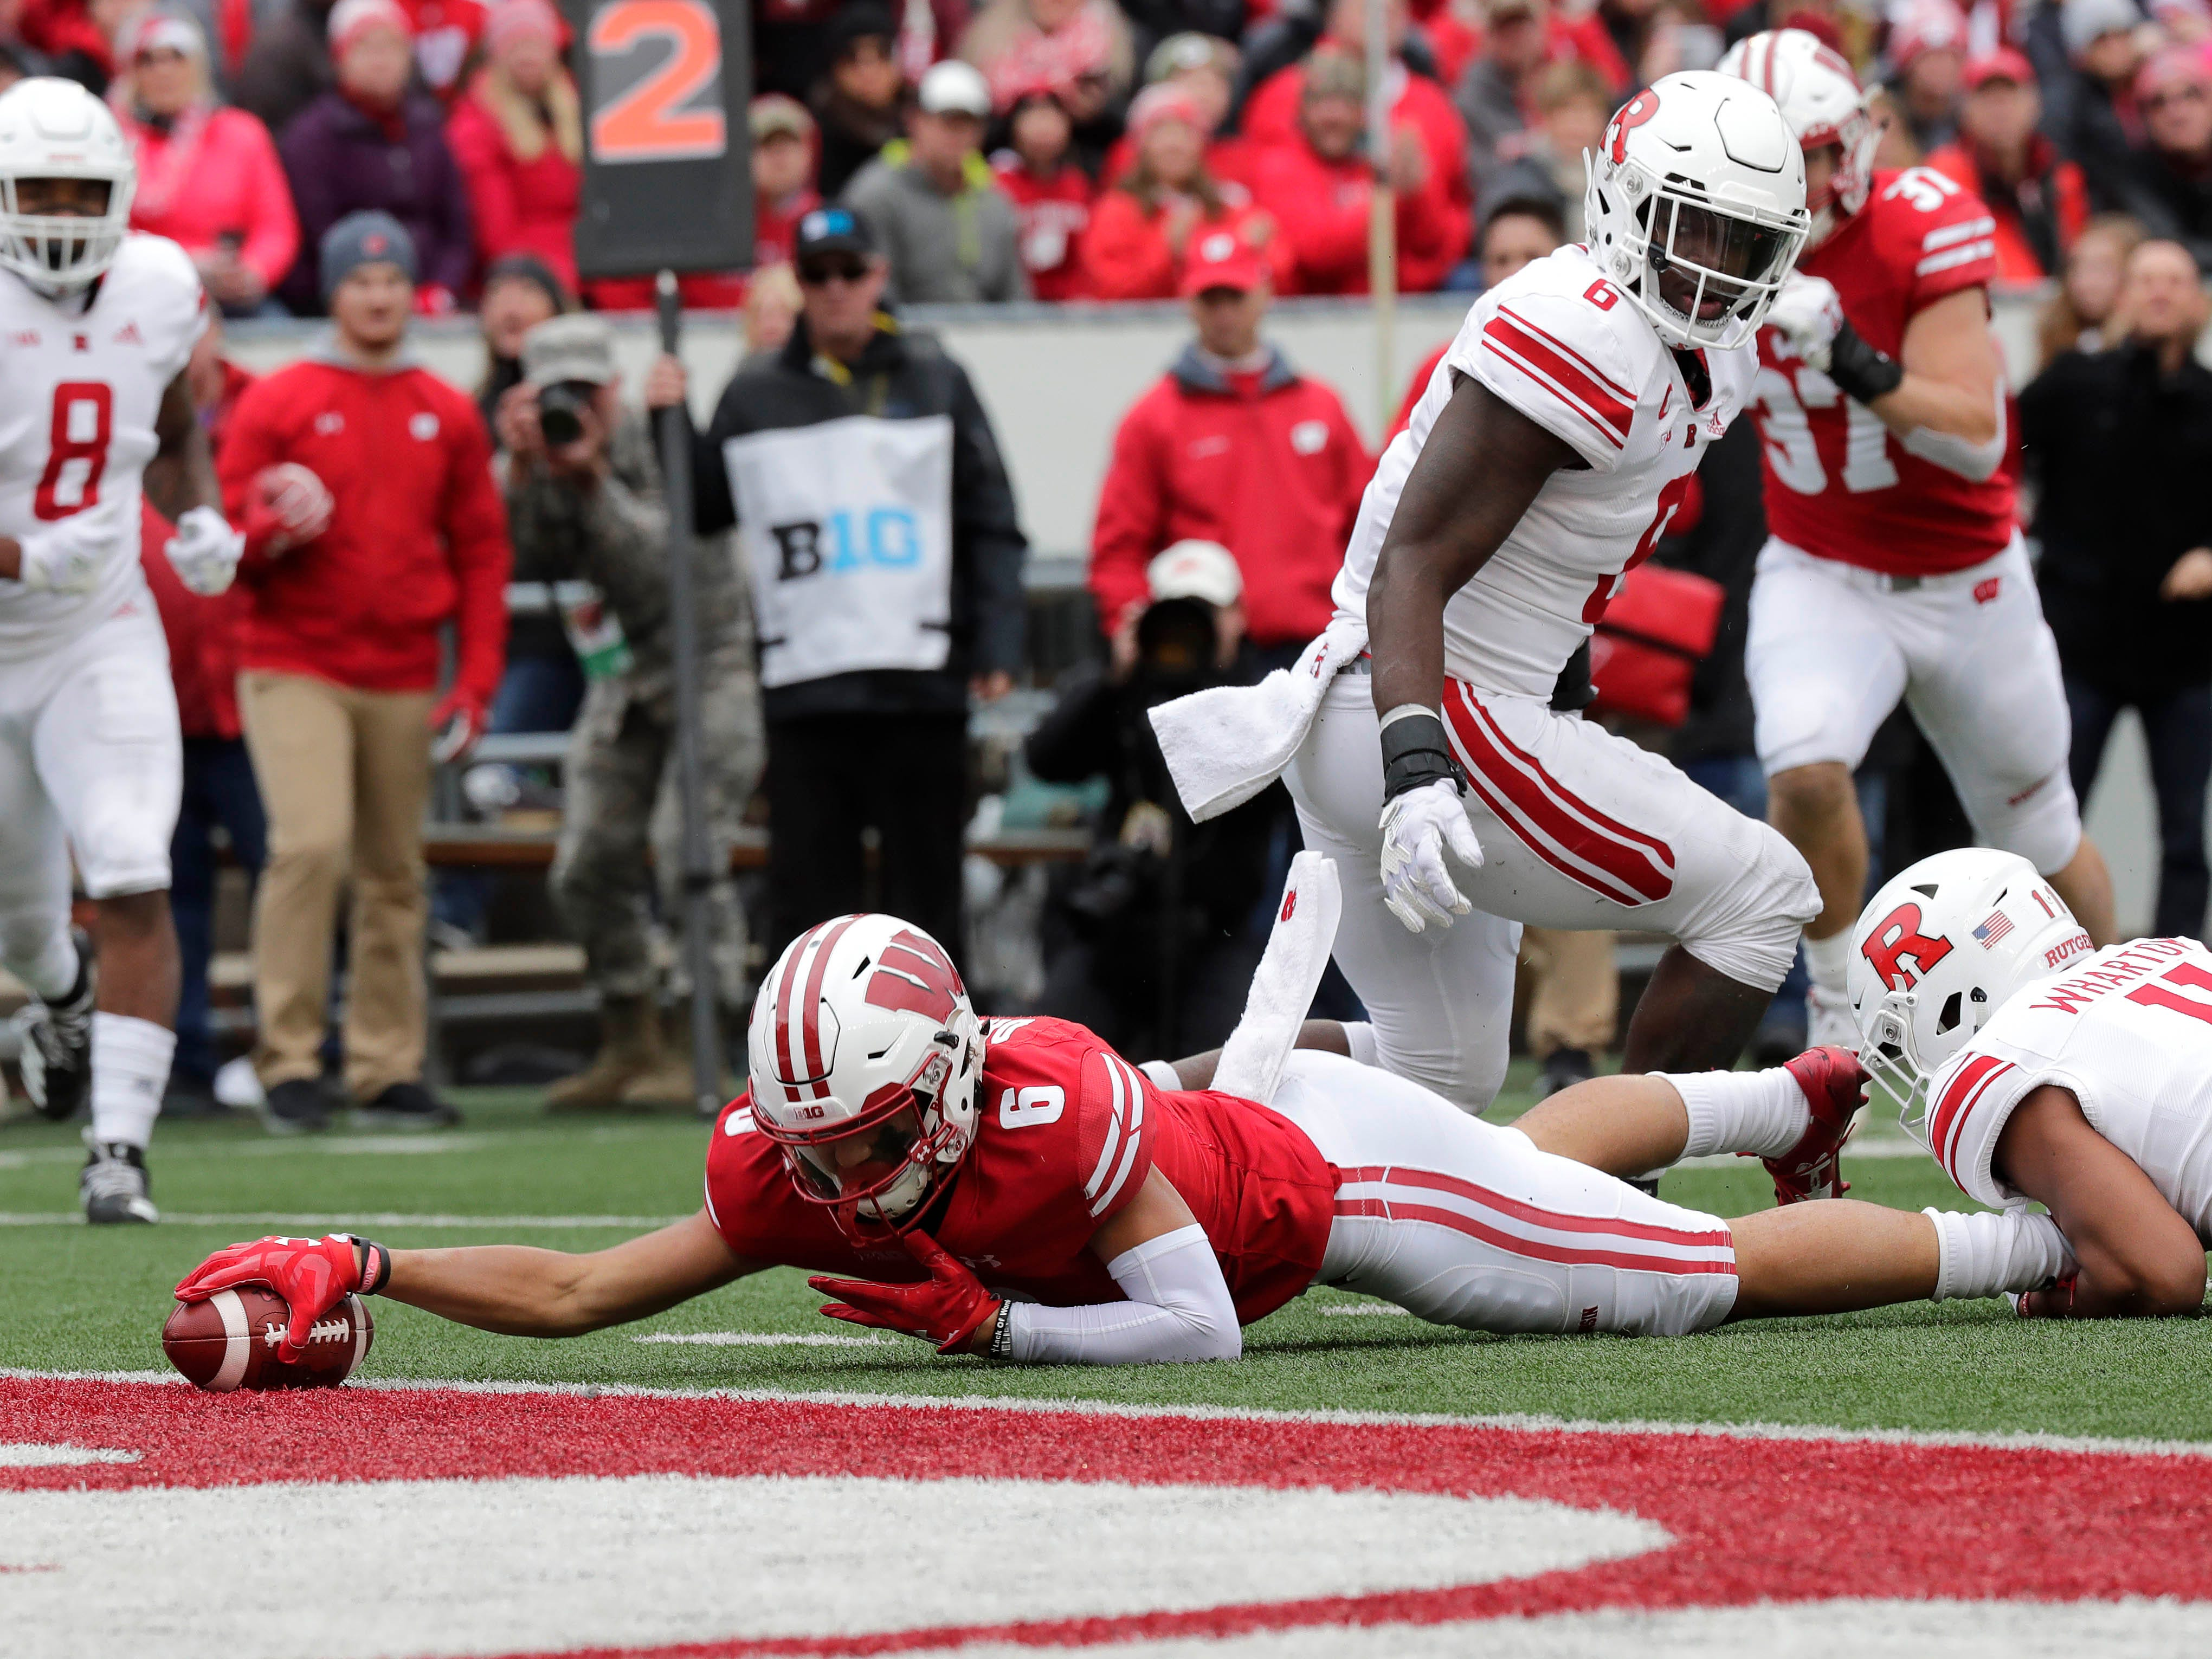 UW wide receiver Danny Davis III just breaks the plain of the goal line for a 11-yard touchdown reception against Rutgers in the fourth quarter on Saturday.